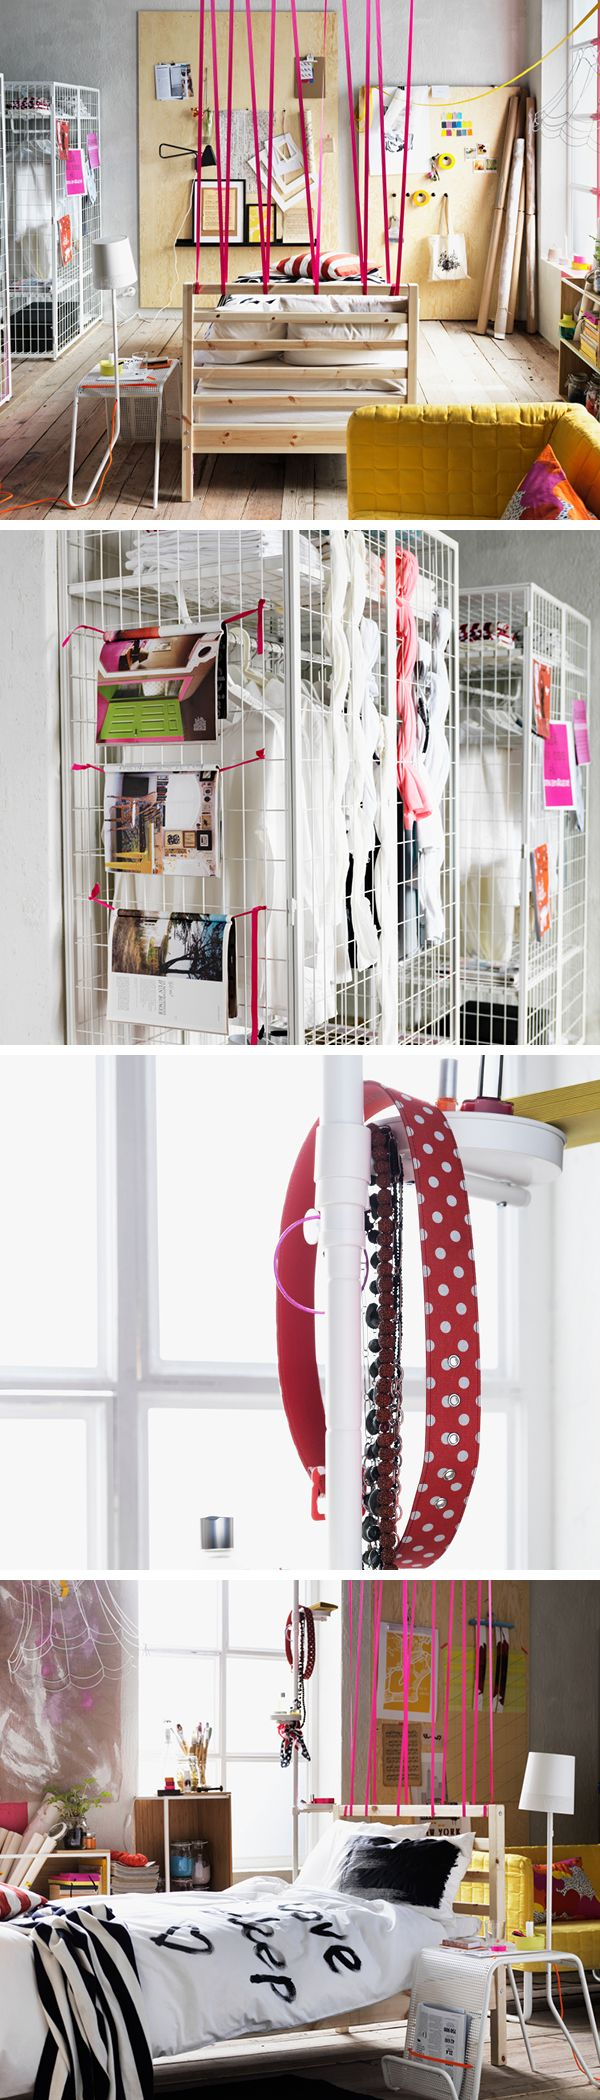 17 Best Images About IKEA Catalogue 2015 On Pinterest Ikea 2015 Diy Room D